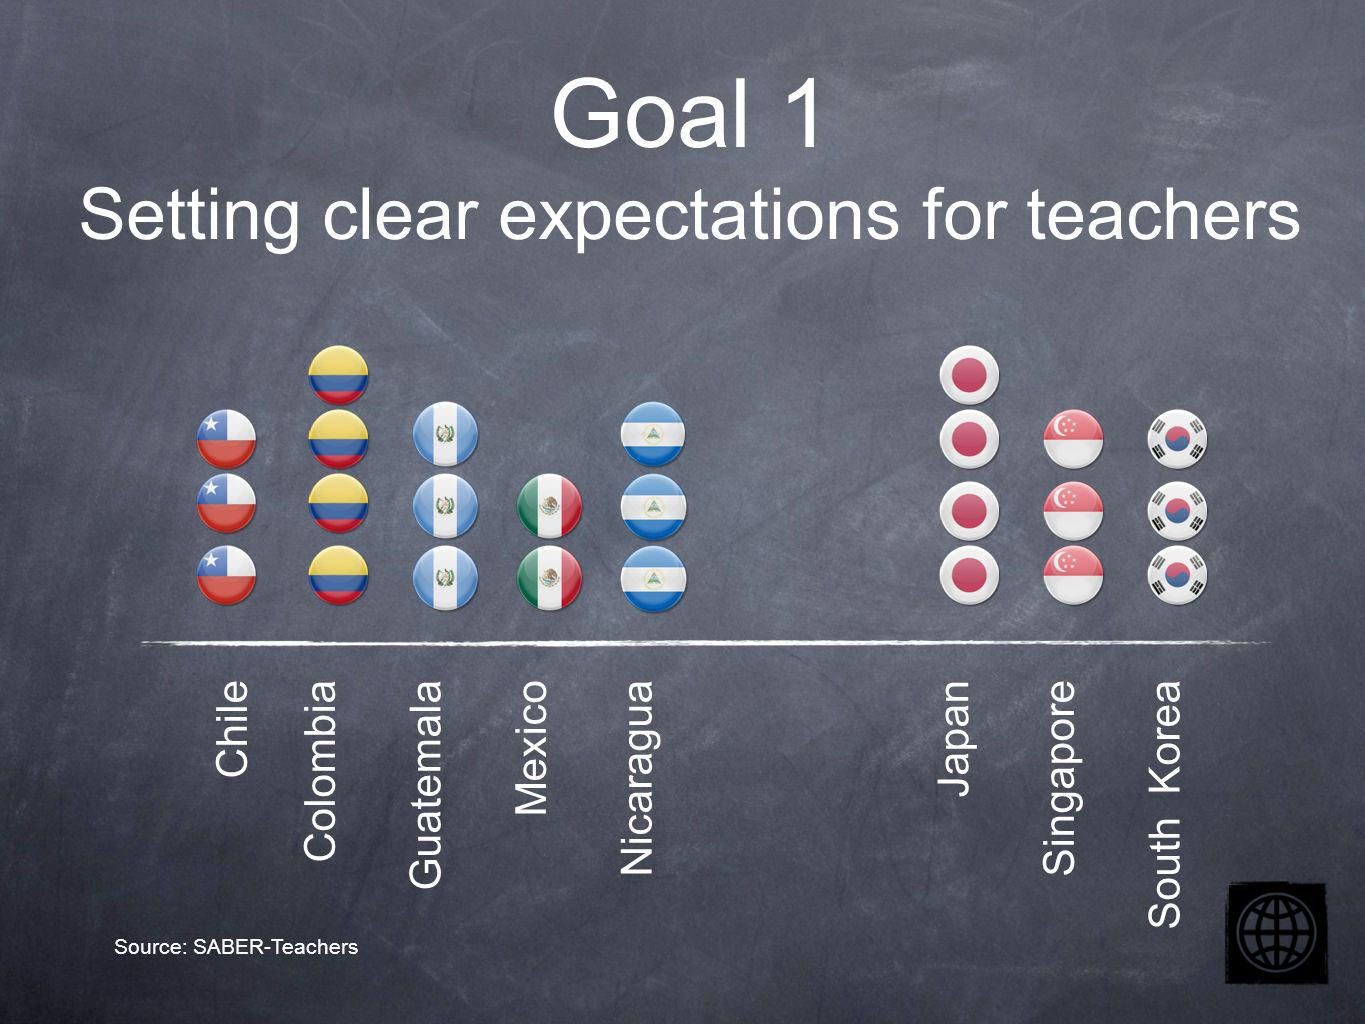 Chile Colombia Guatemala Mexico Nicaragua Japan Singapore South Korea Goal 1 Setting clear expectations for teachers Source: SABER-Teachers